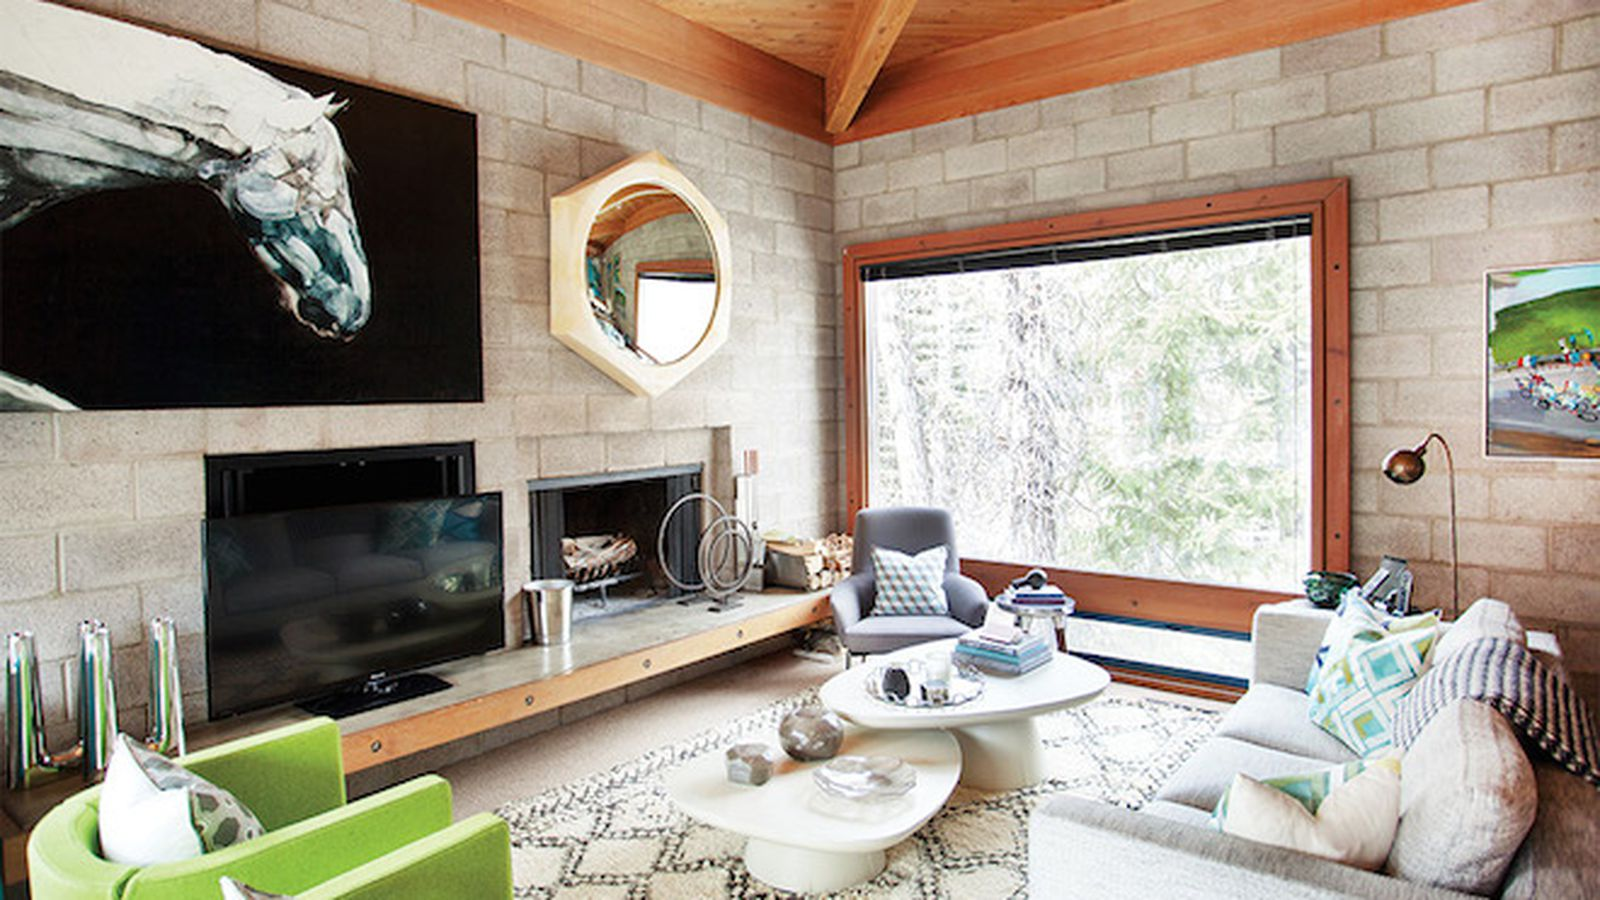 Tiny Home Designs: Step Inside A Surprisingly Glam Cinder-Block House In